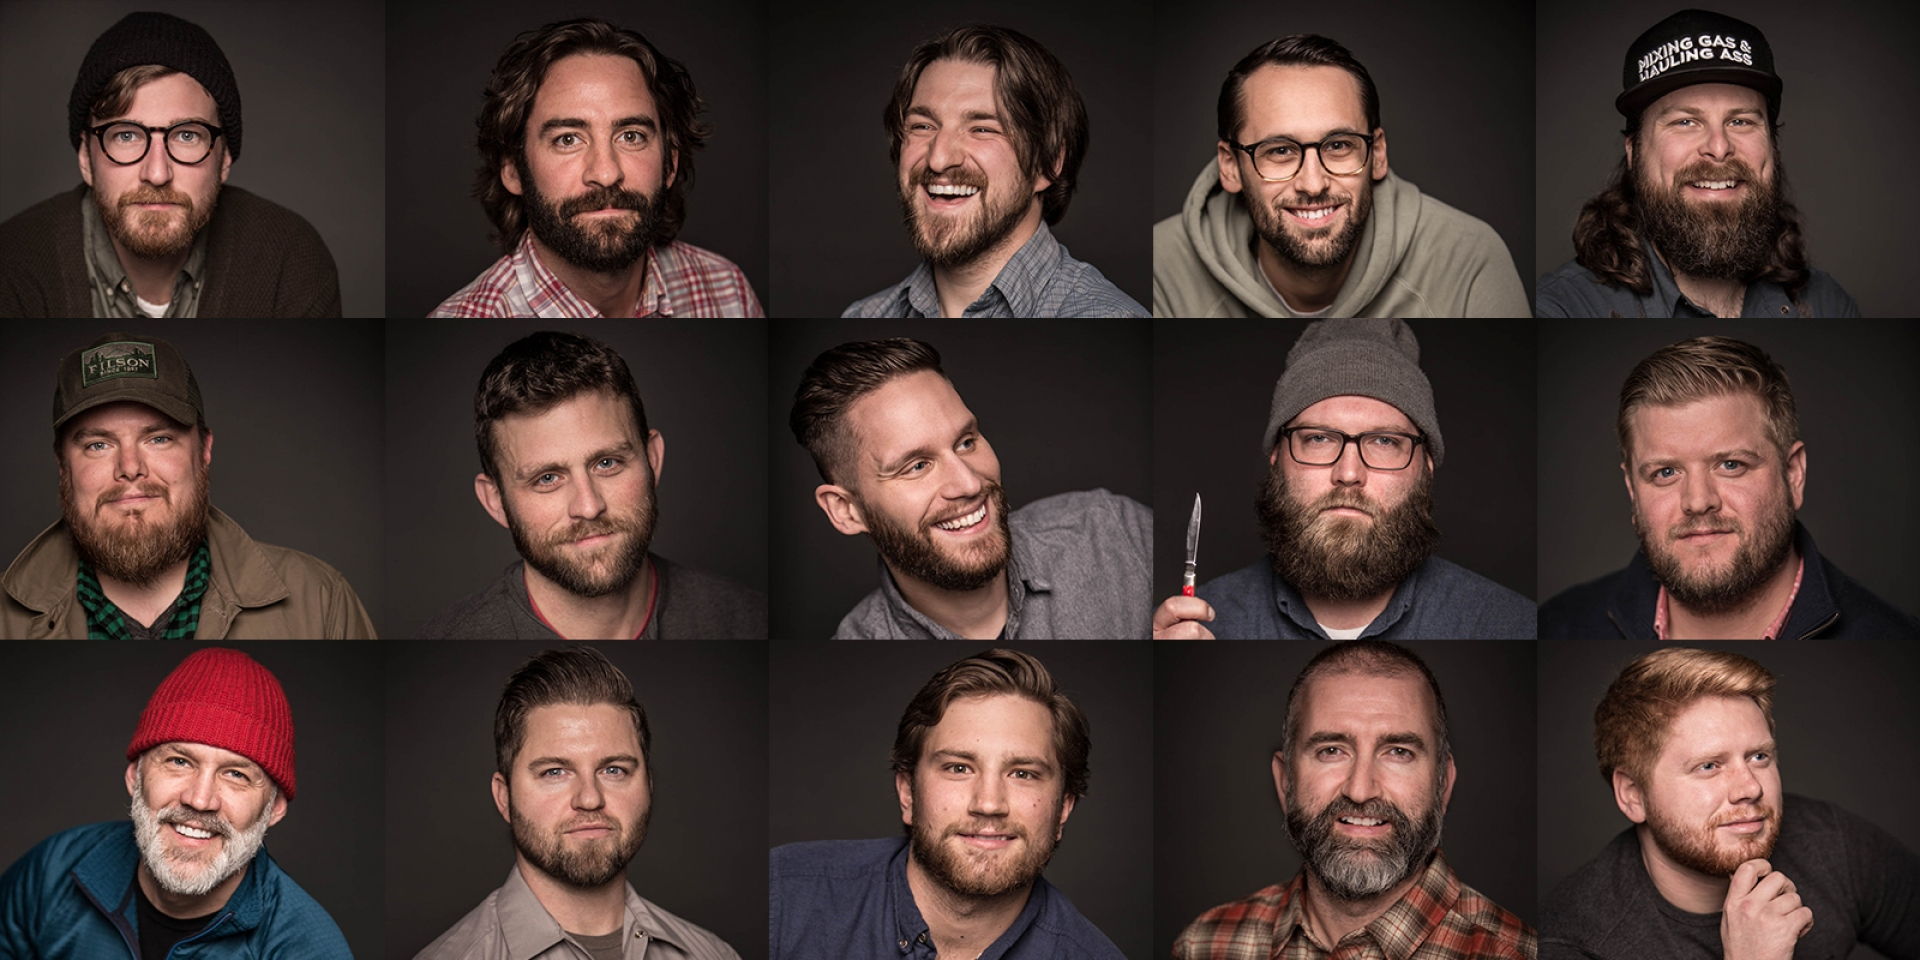 collage of the sixspeed team members with beards